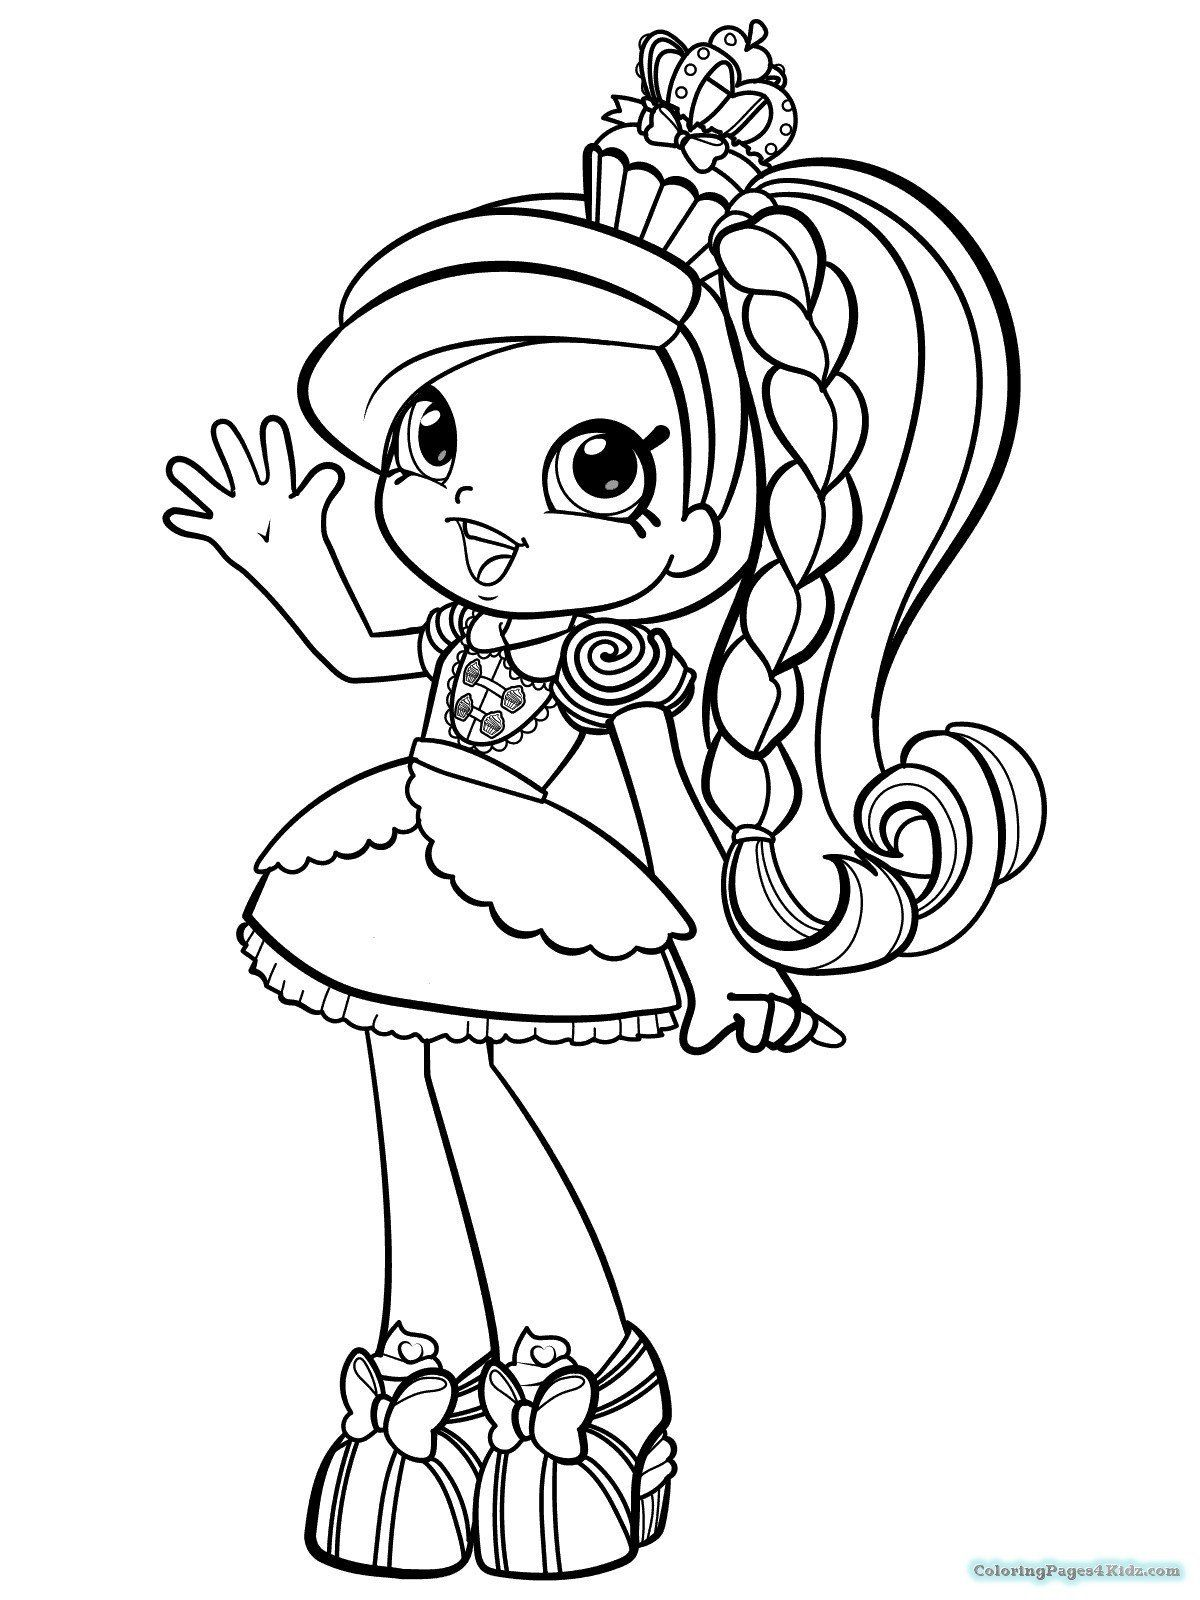 Printable Coloring Pages For Children Coloring Pages Lol Dolls To Color And Print Anim Shopkin Coloring Pages Shopkins Colouring Pages Ballerina Coloring Pages